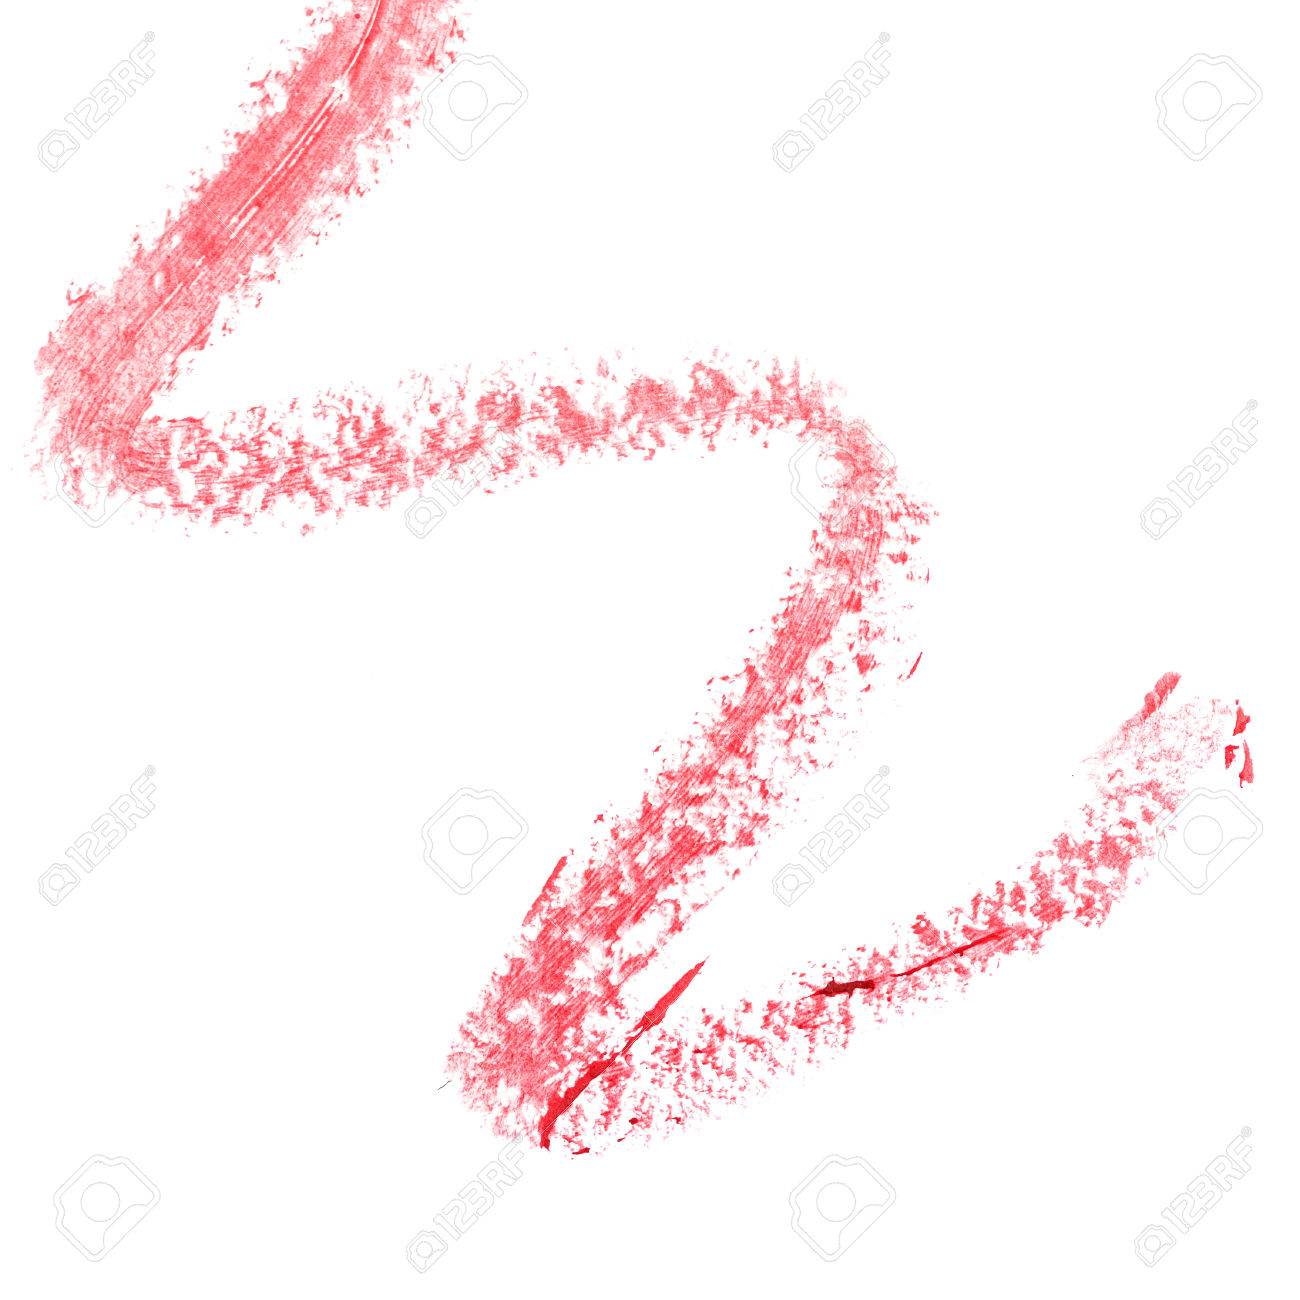 Abstract Art Is A Trace Of Red Lipstick On Paper Design Element